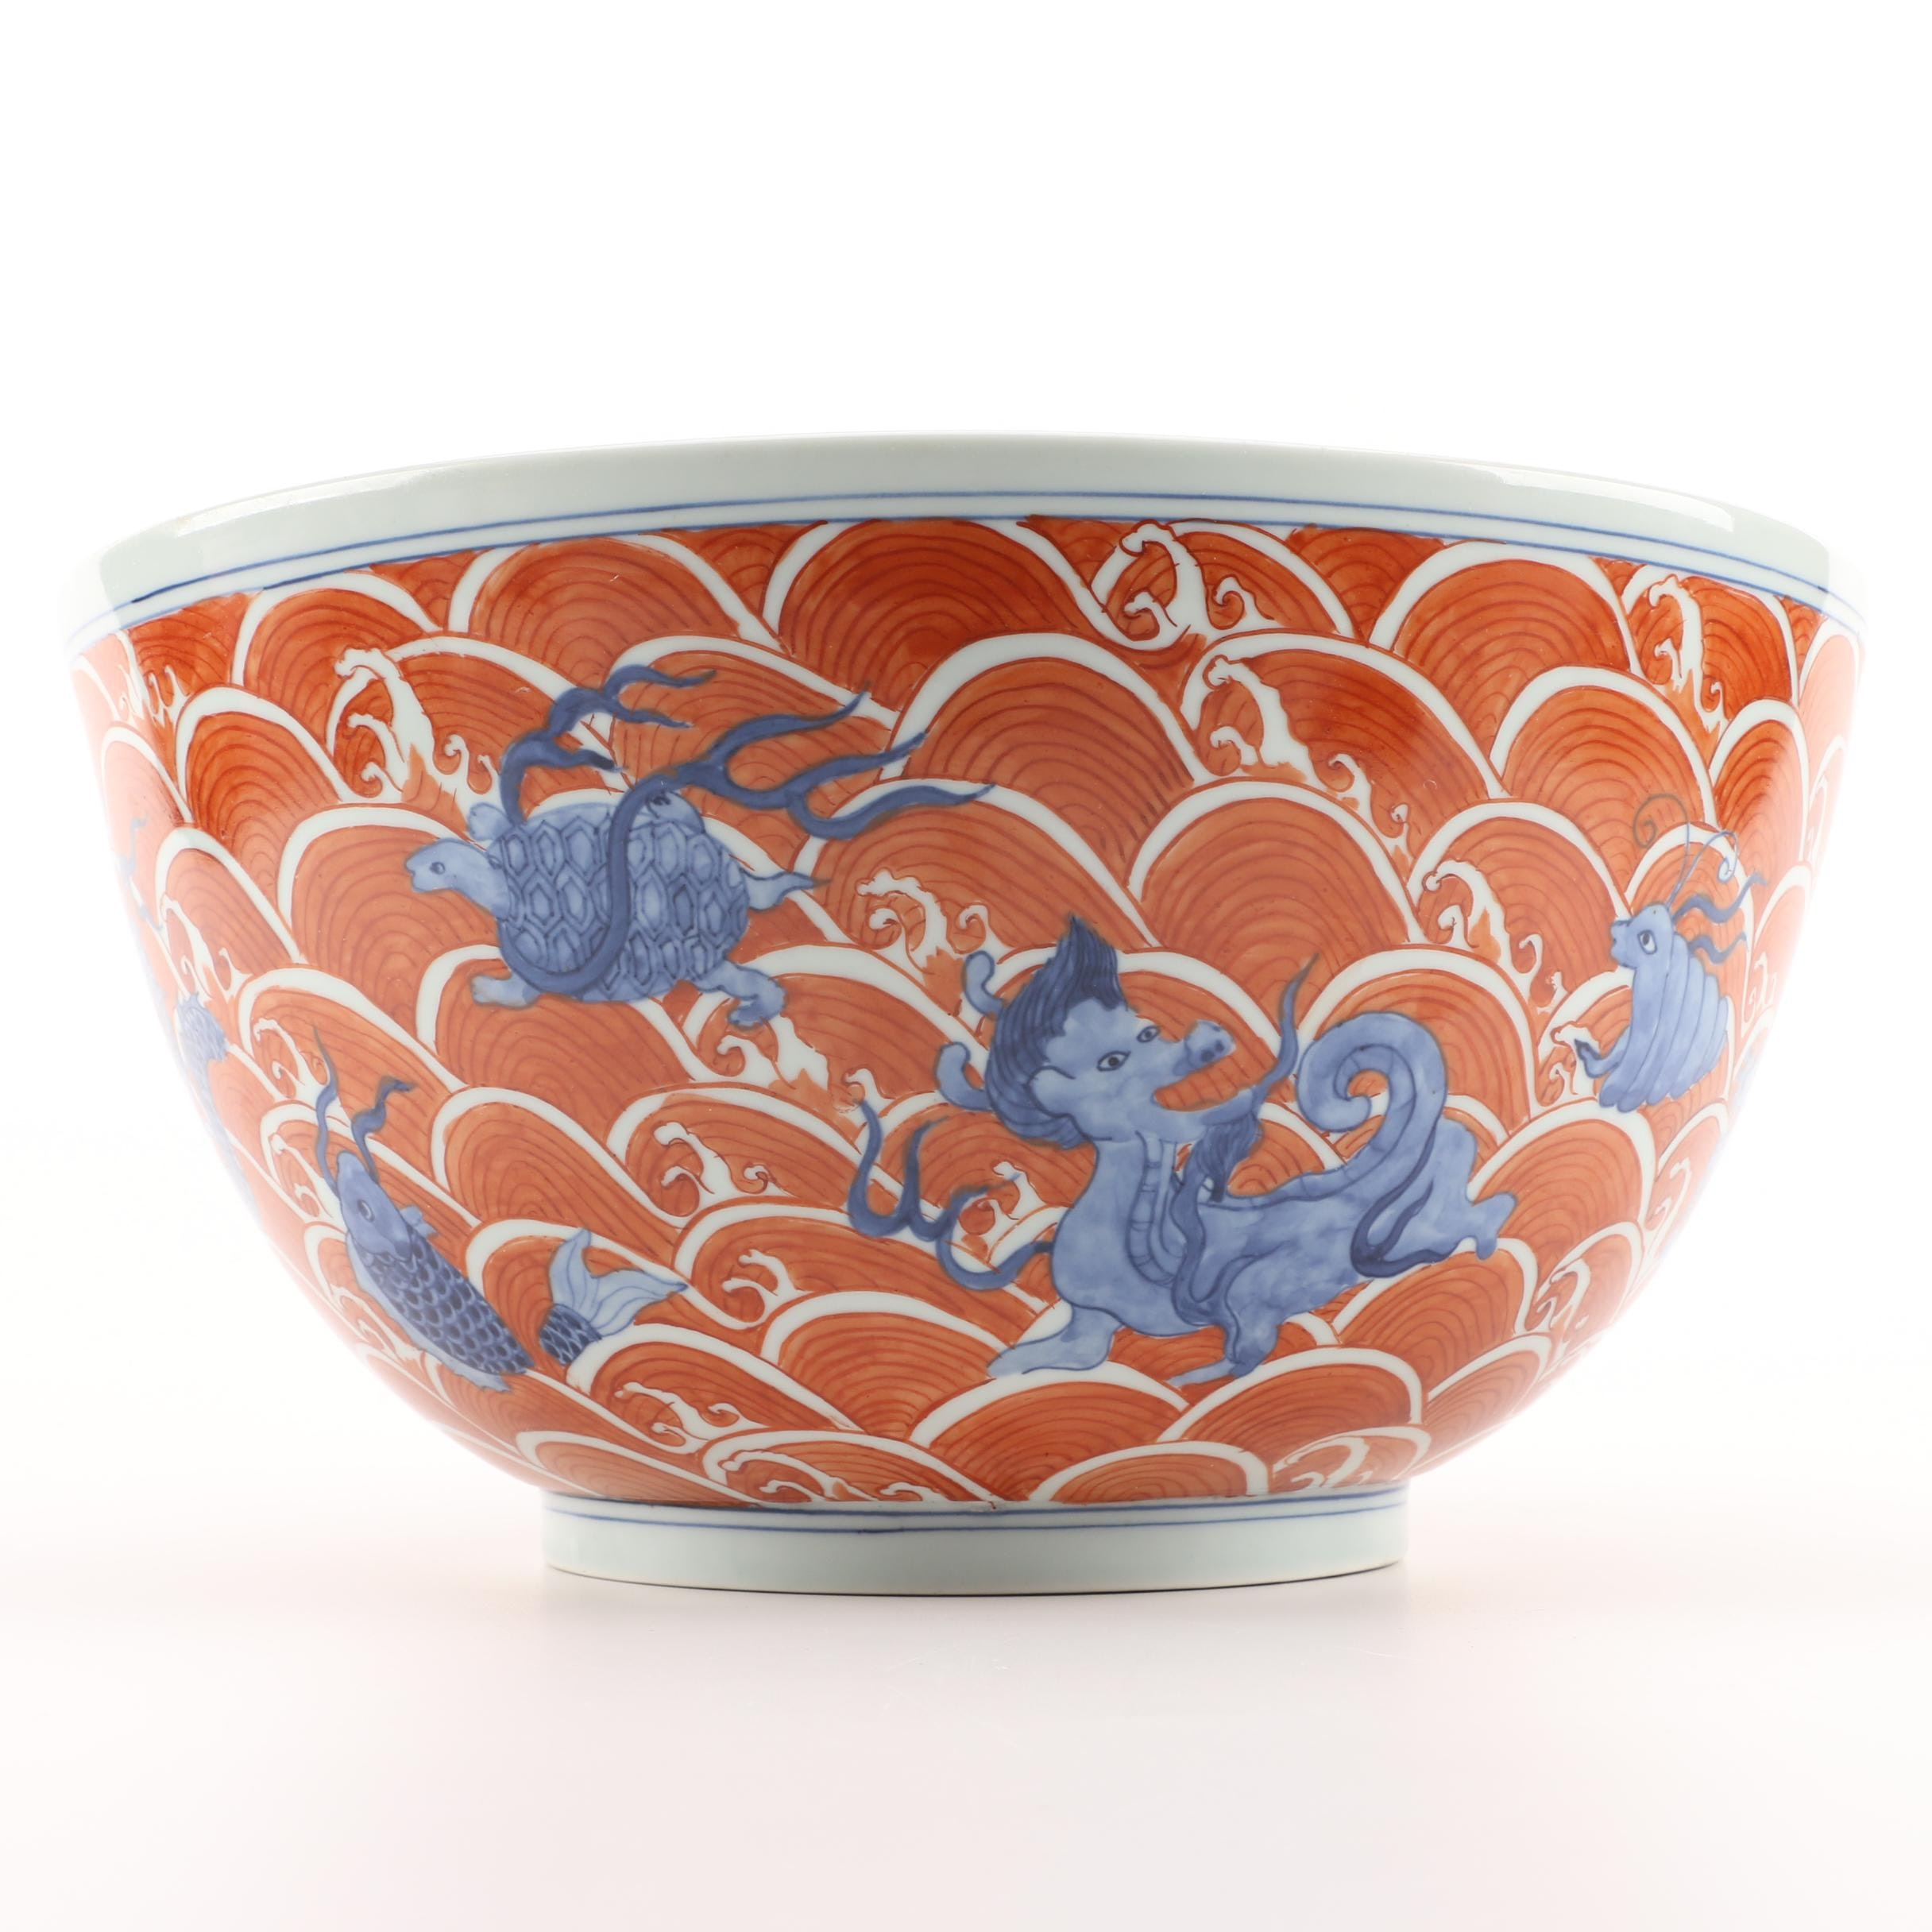 Hand-painted Chinese Porcelain Centerpiece Bowl